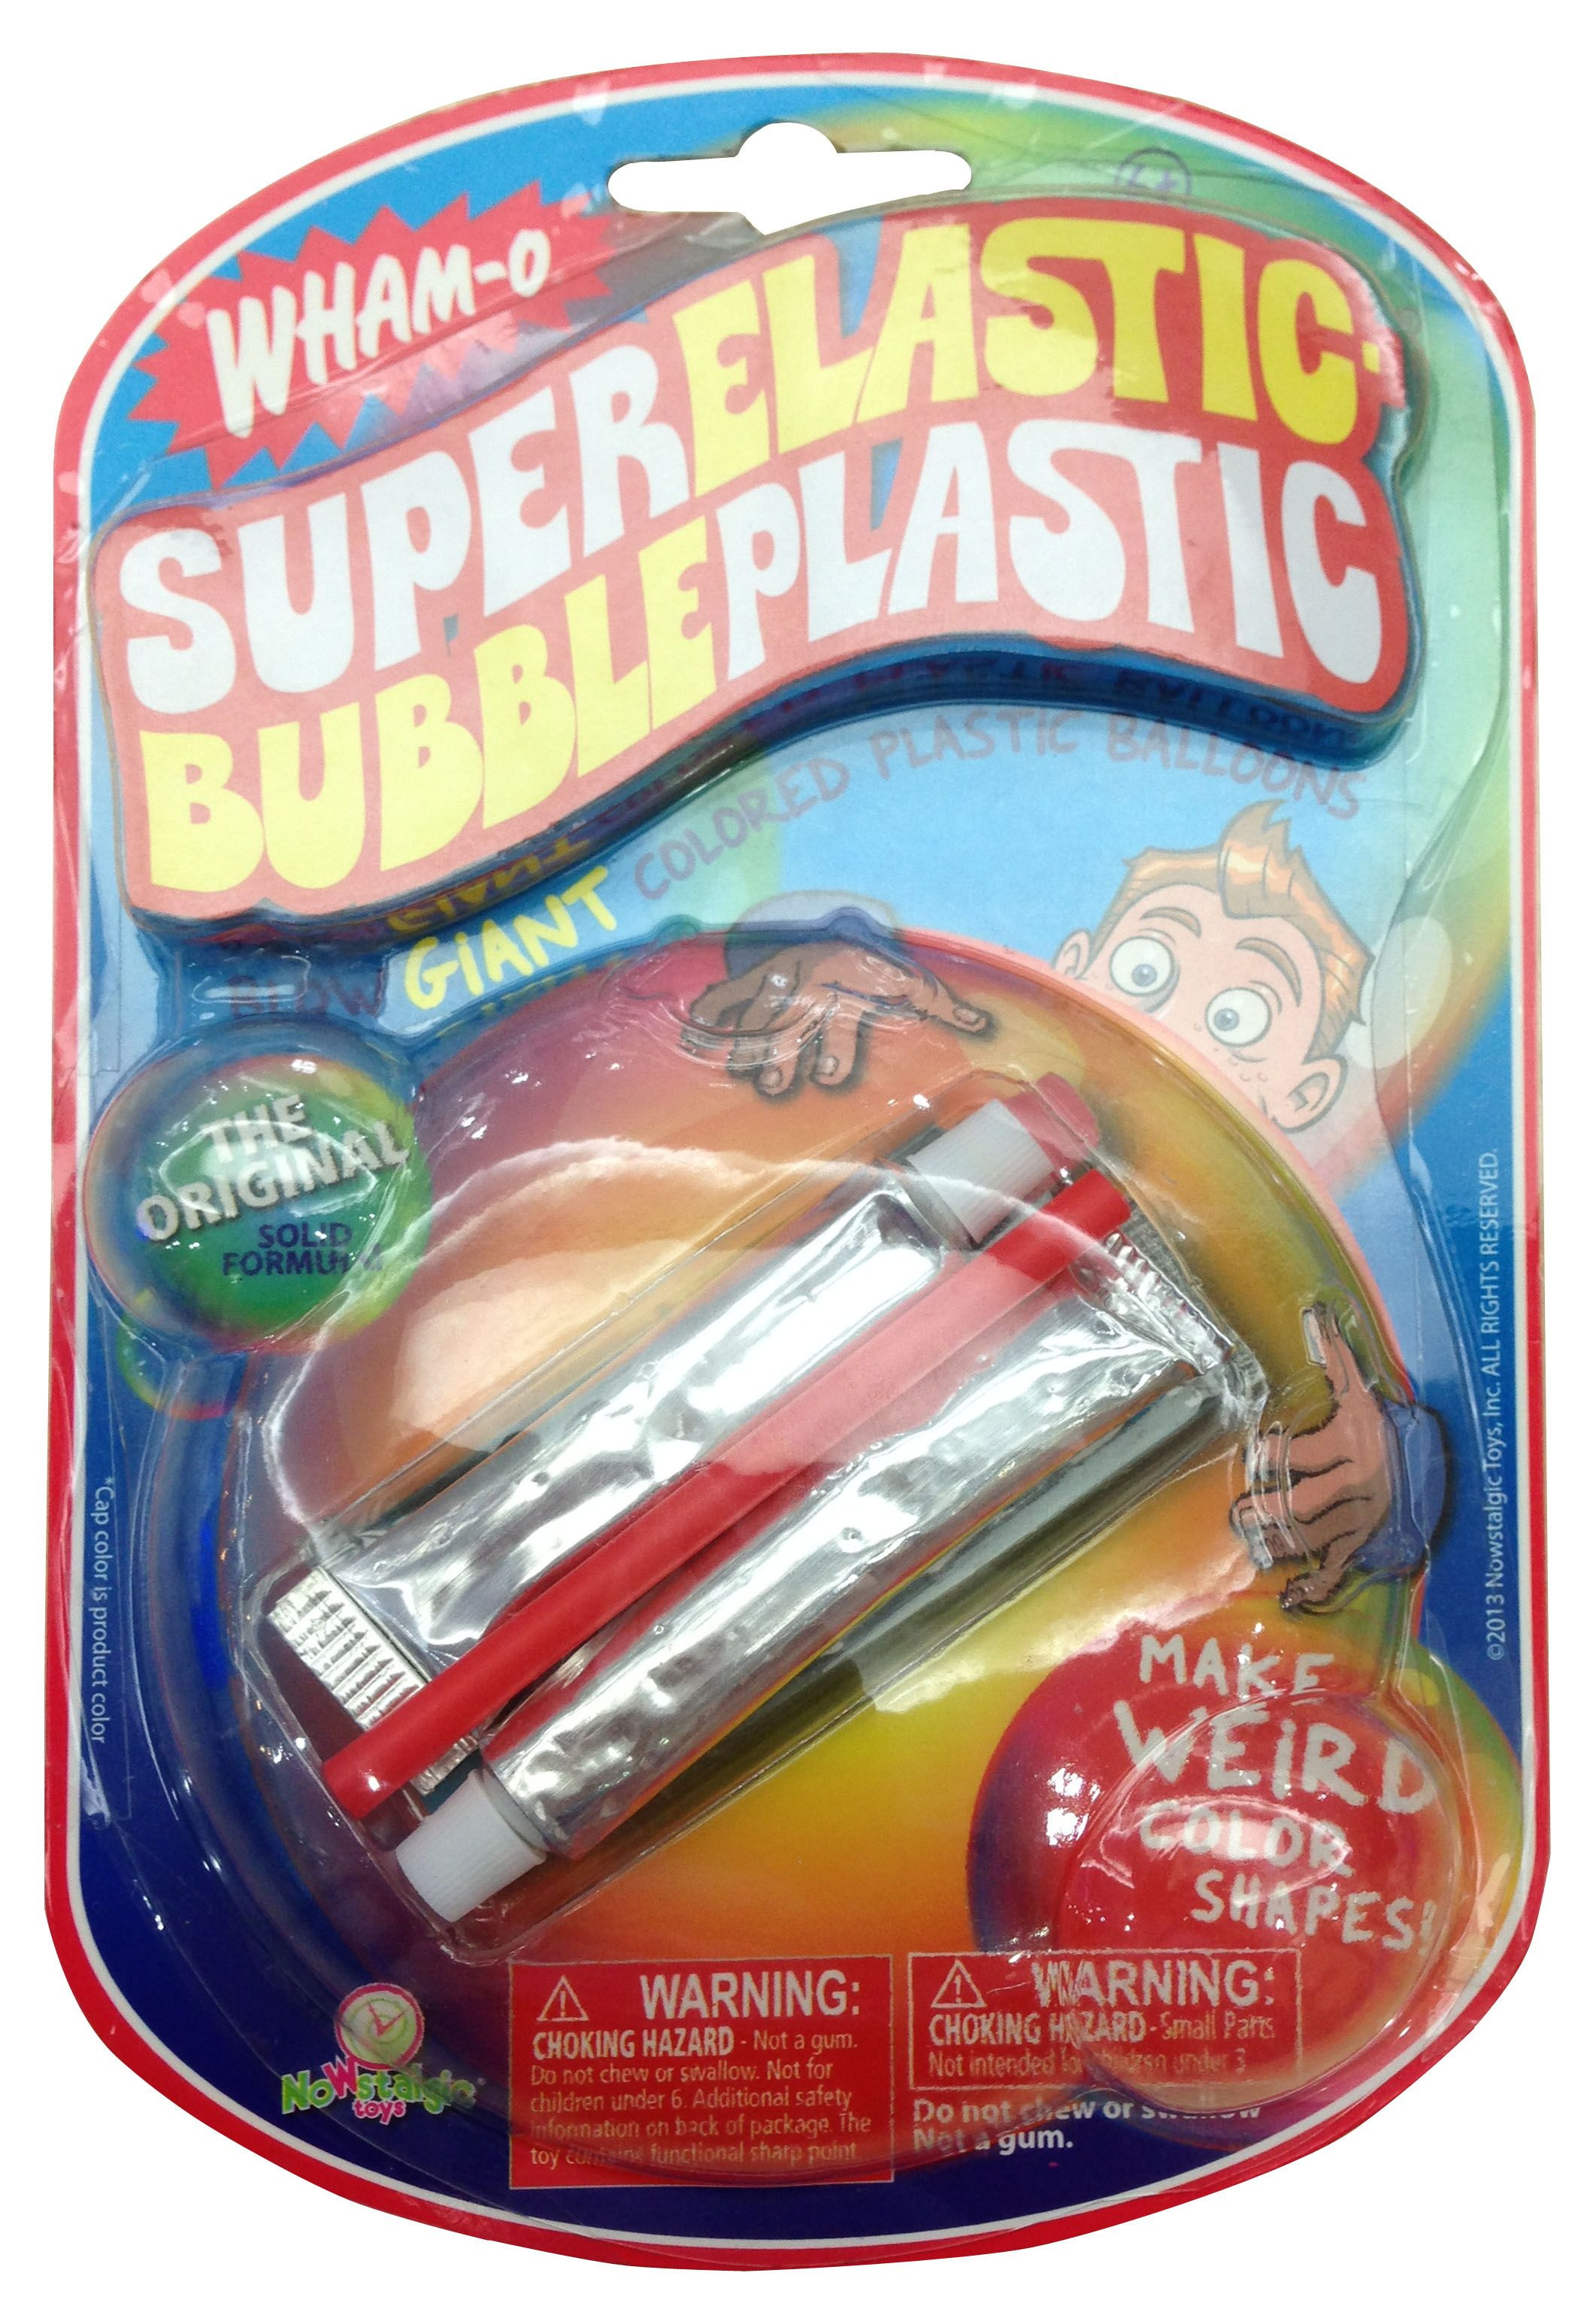 Super Elastic Bubble Plastic Try It Out It S Quite Fantastic